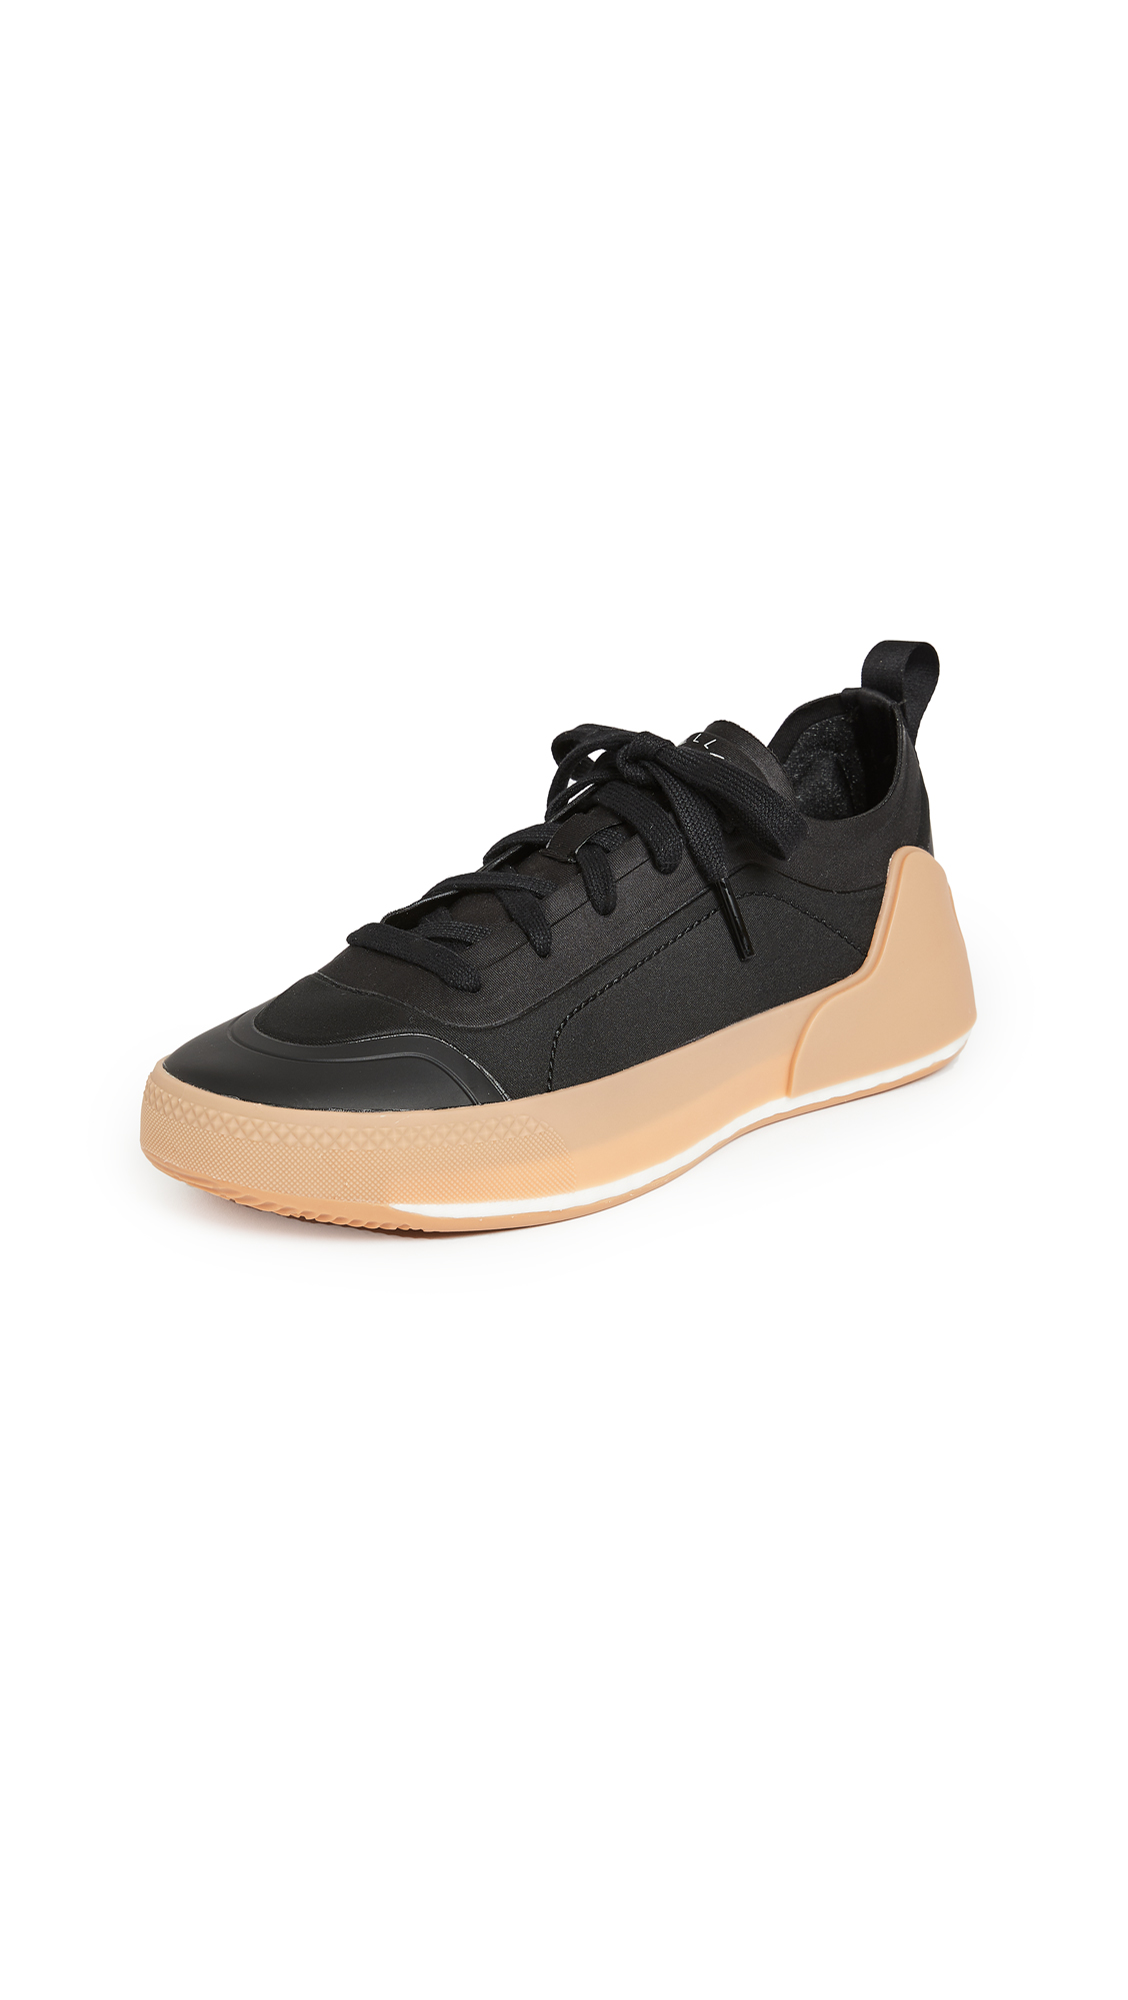 adidas by Stella McCartney Asmc Treino Sneakers